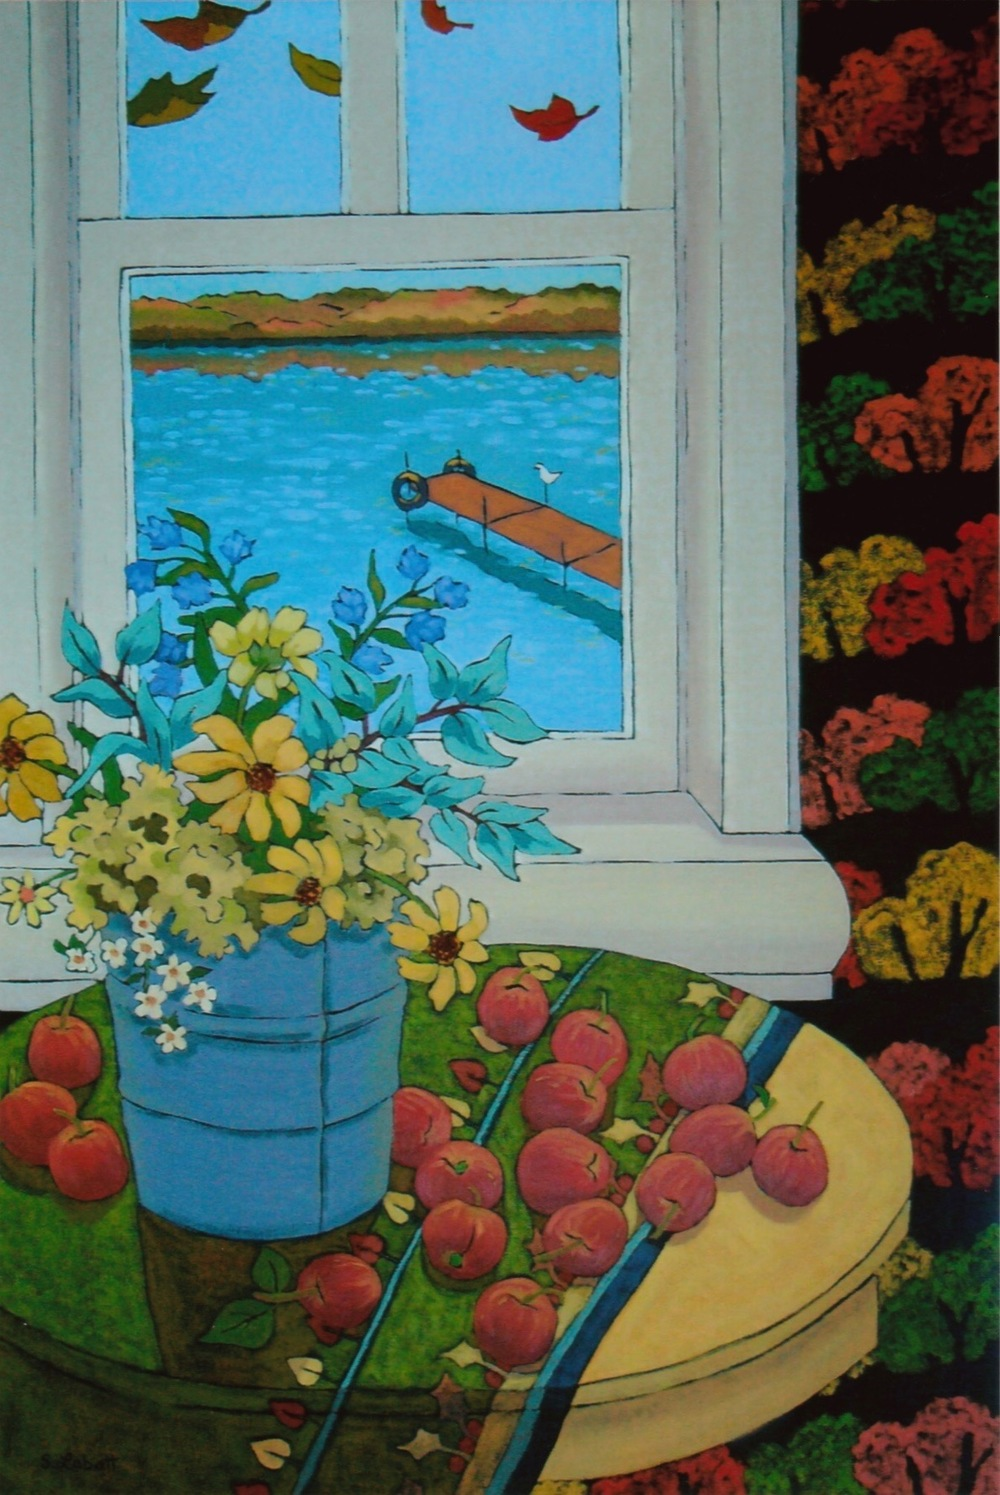 "Season of Splendor; Acrylic on canvas, 36"" x 24"", 2009"